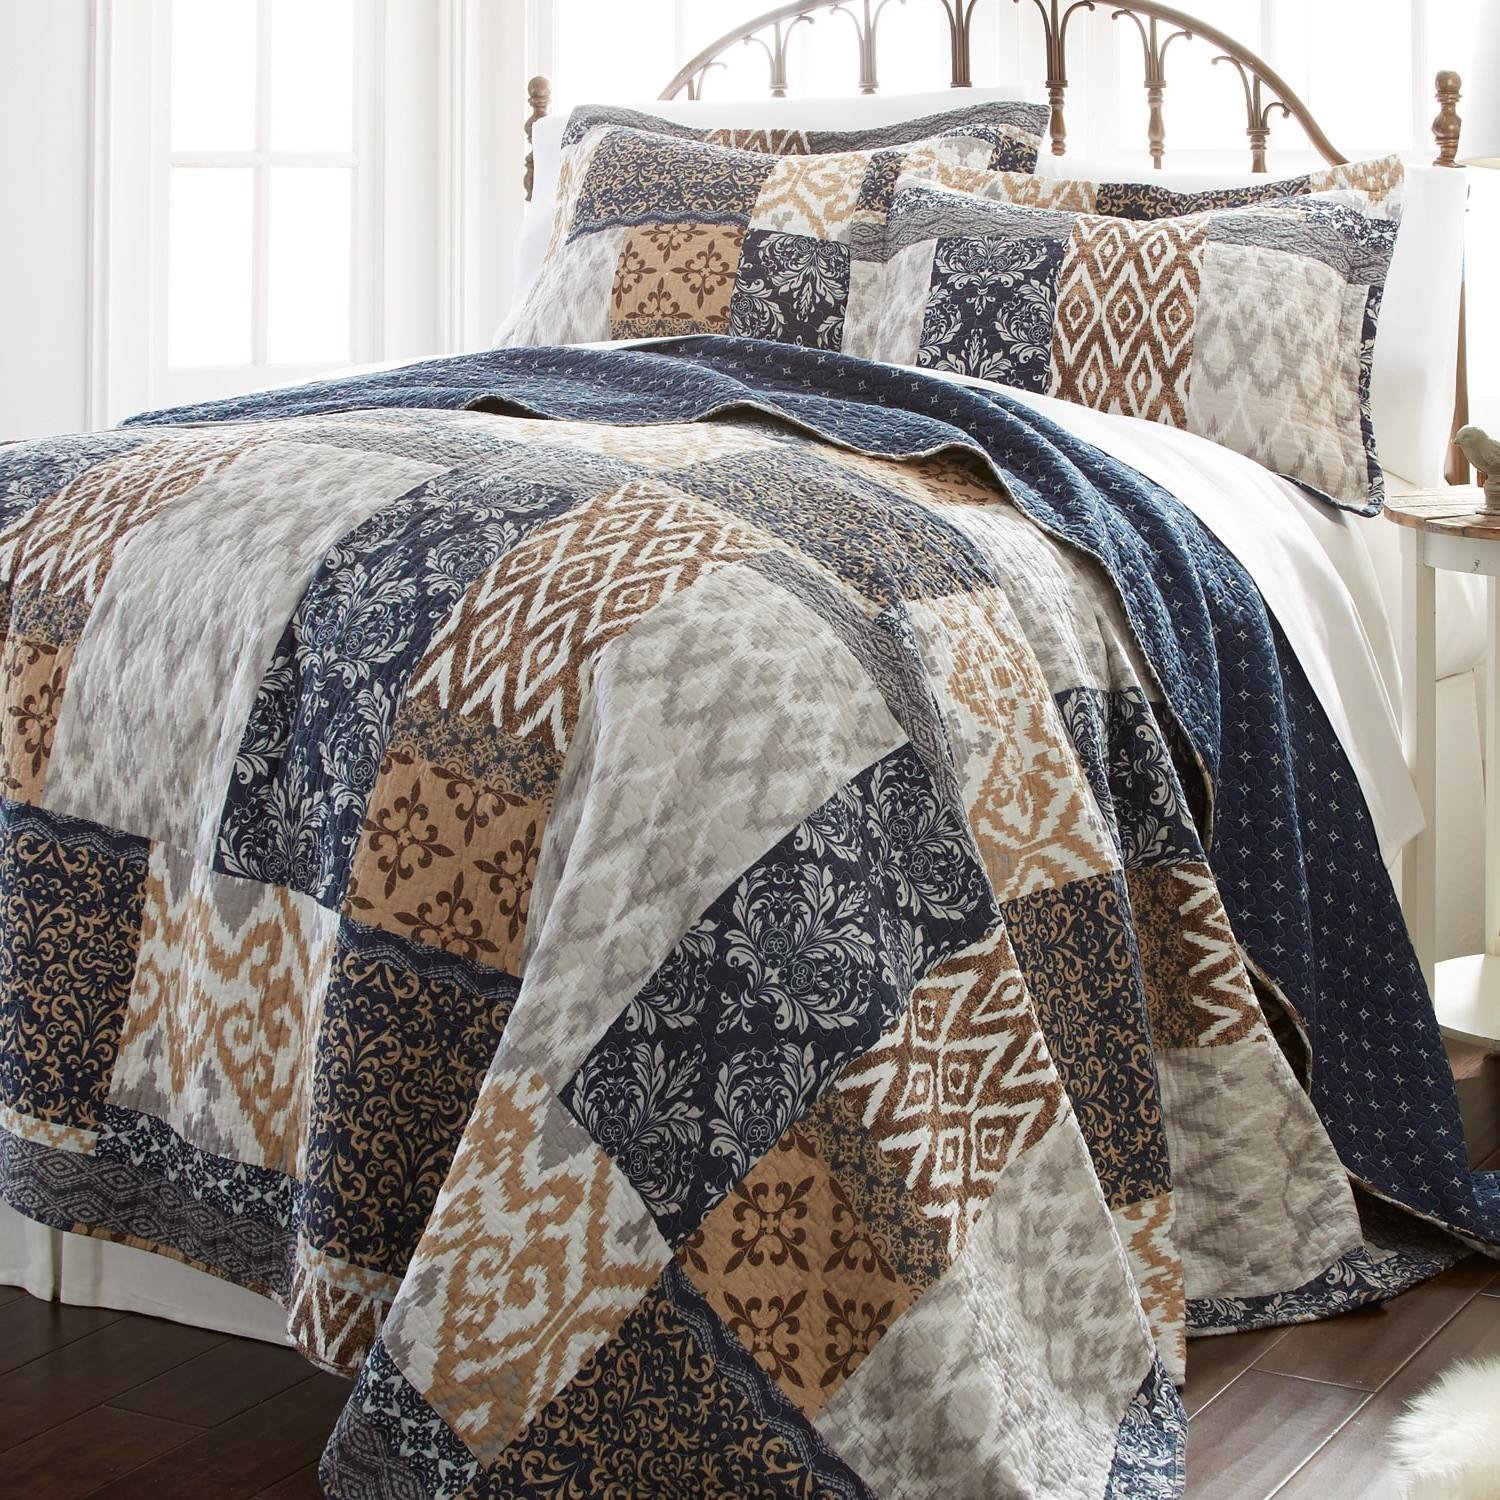 3 Piece Beautiful Brown Blue Tan White King Quilt Set, Geometric Damask Patchwork Themed Reversible Bedding Navy Grey Diamond Bohemian BohoTrendy Cottage Navy Rustic Pretty Vintage Stylish, Cotton